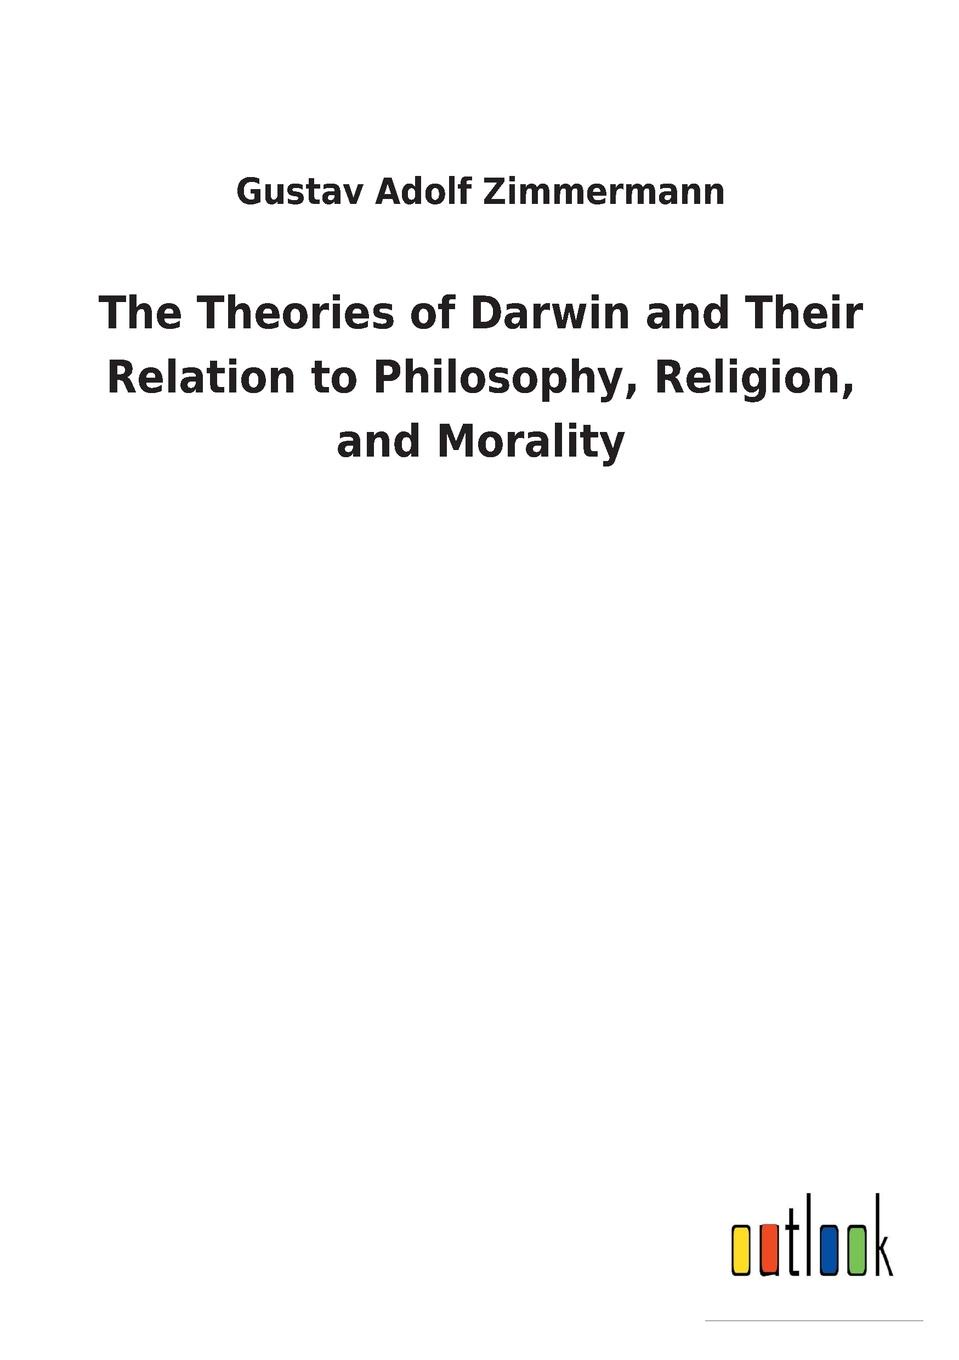 Gustav Adolf Zimmermann The Theories of Darwin and Their Relation to Philosophy, Religion, and Morality darwin charles the descent of man and seletion in relation to sex